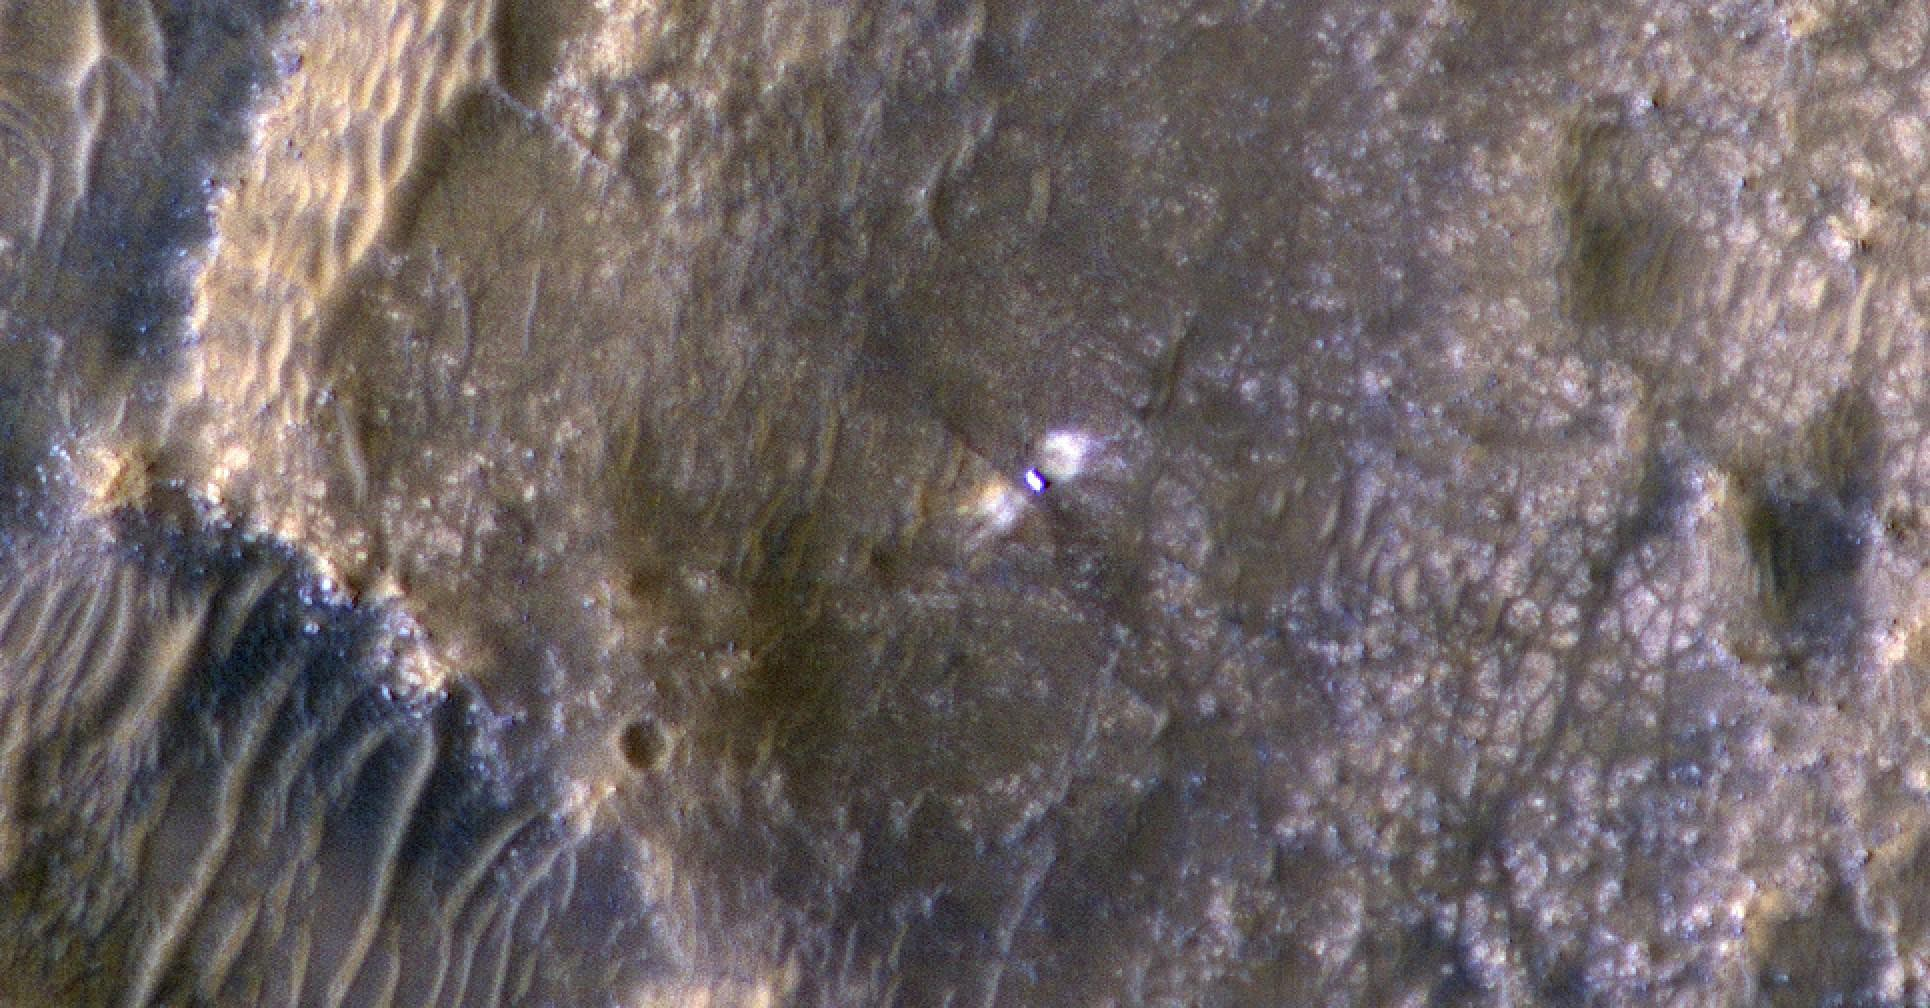 The High-Resolution Science Experiment (HiRISE) camera aboard NASA's Mars Reconnaissance Orbiter (MRO) took this image of the Perseverance rover on Feb. 24, 2021. The false-color image shows a ring of blast marks where thrusters from the rover's descent stage blew away dust during landing on Feb. 18, 2021.